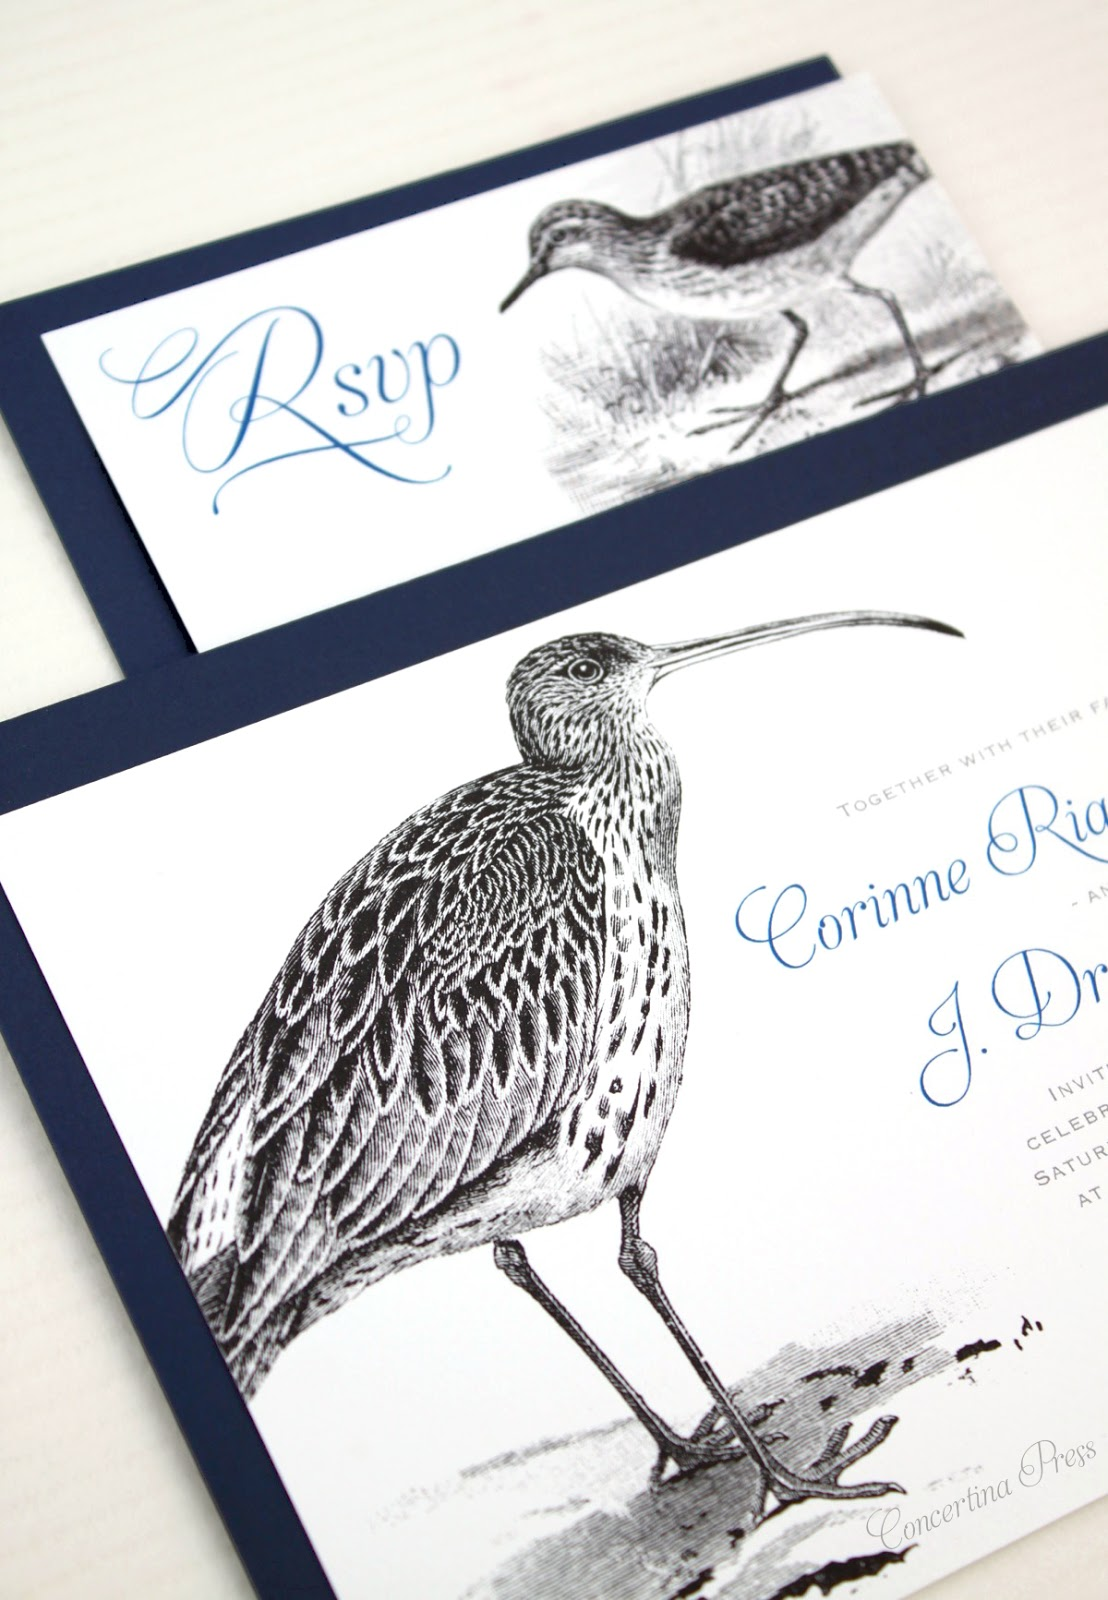 Curlew and Sandpiper Wedding Invitations for Lovebirds who LOVE birds - feather detail - from Concertina Press